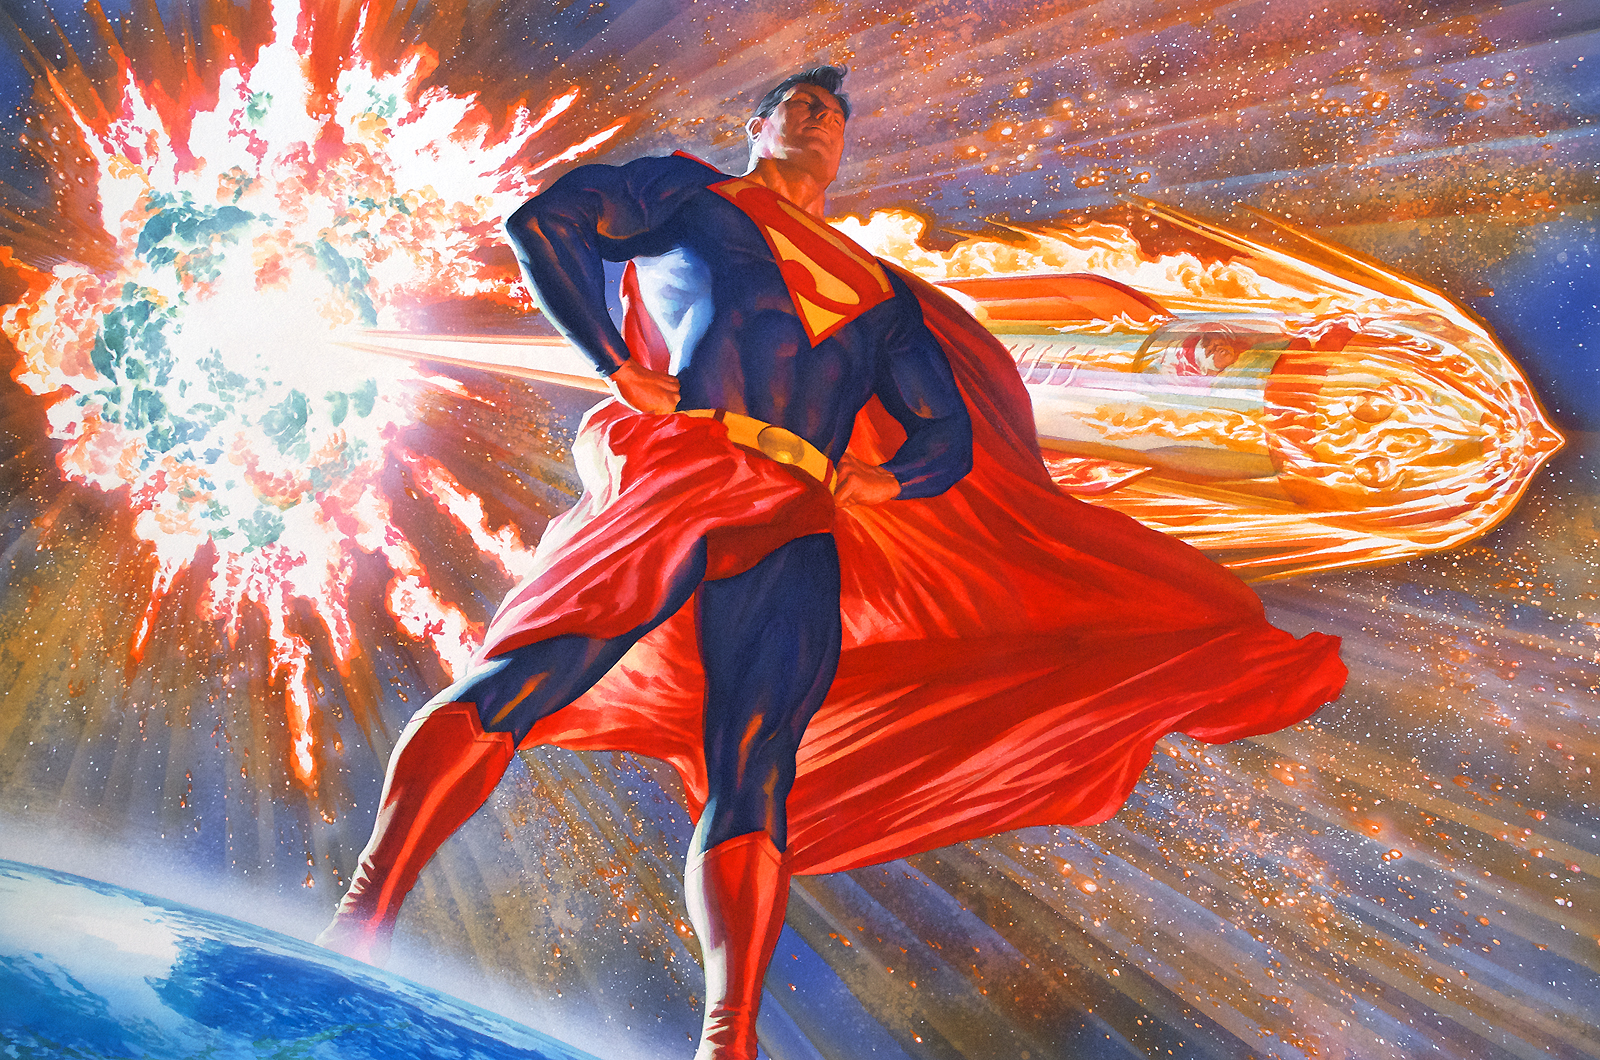 Minisode 39 | Get You A Superman Who Can Do Both: Superman's Kryptonian Heritage